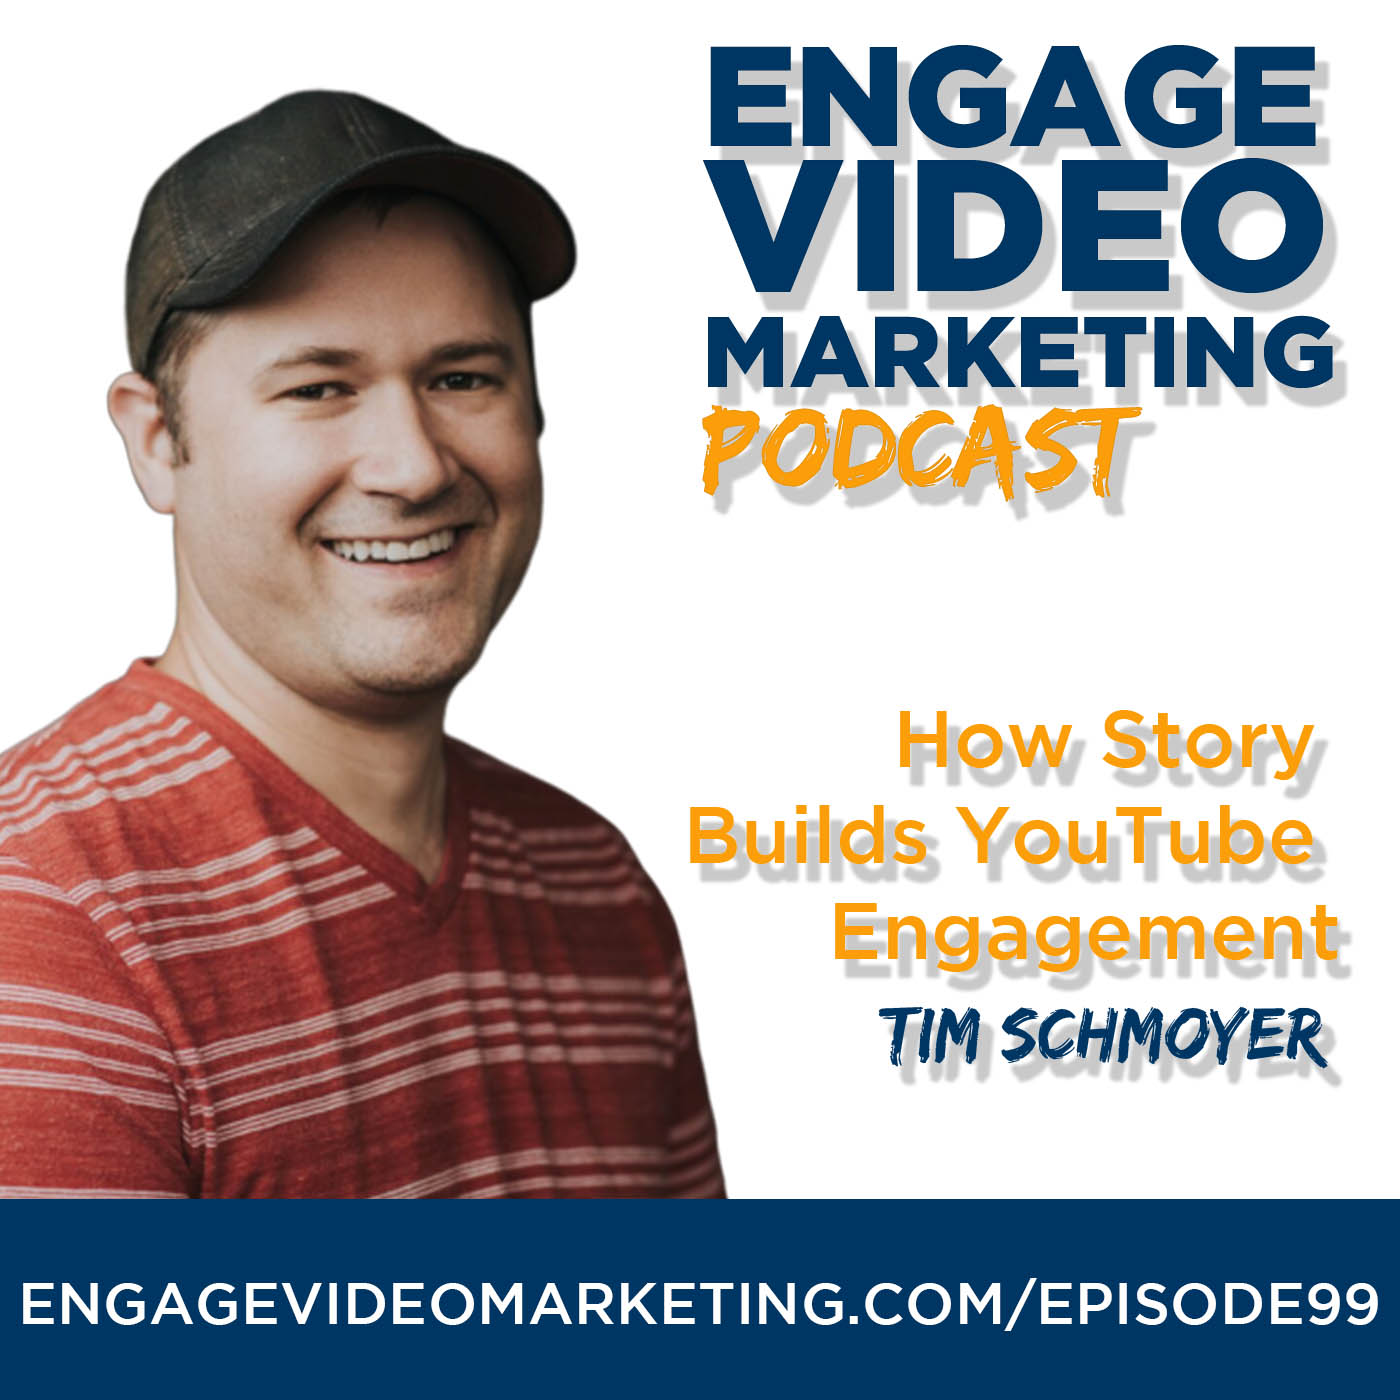 How Story Builds YouTube Engagement with Tim Schmoyer